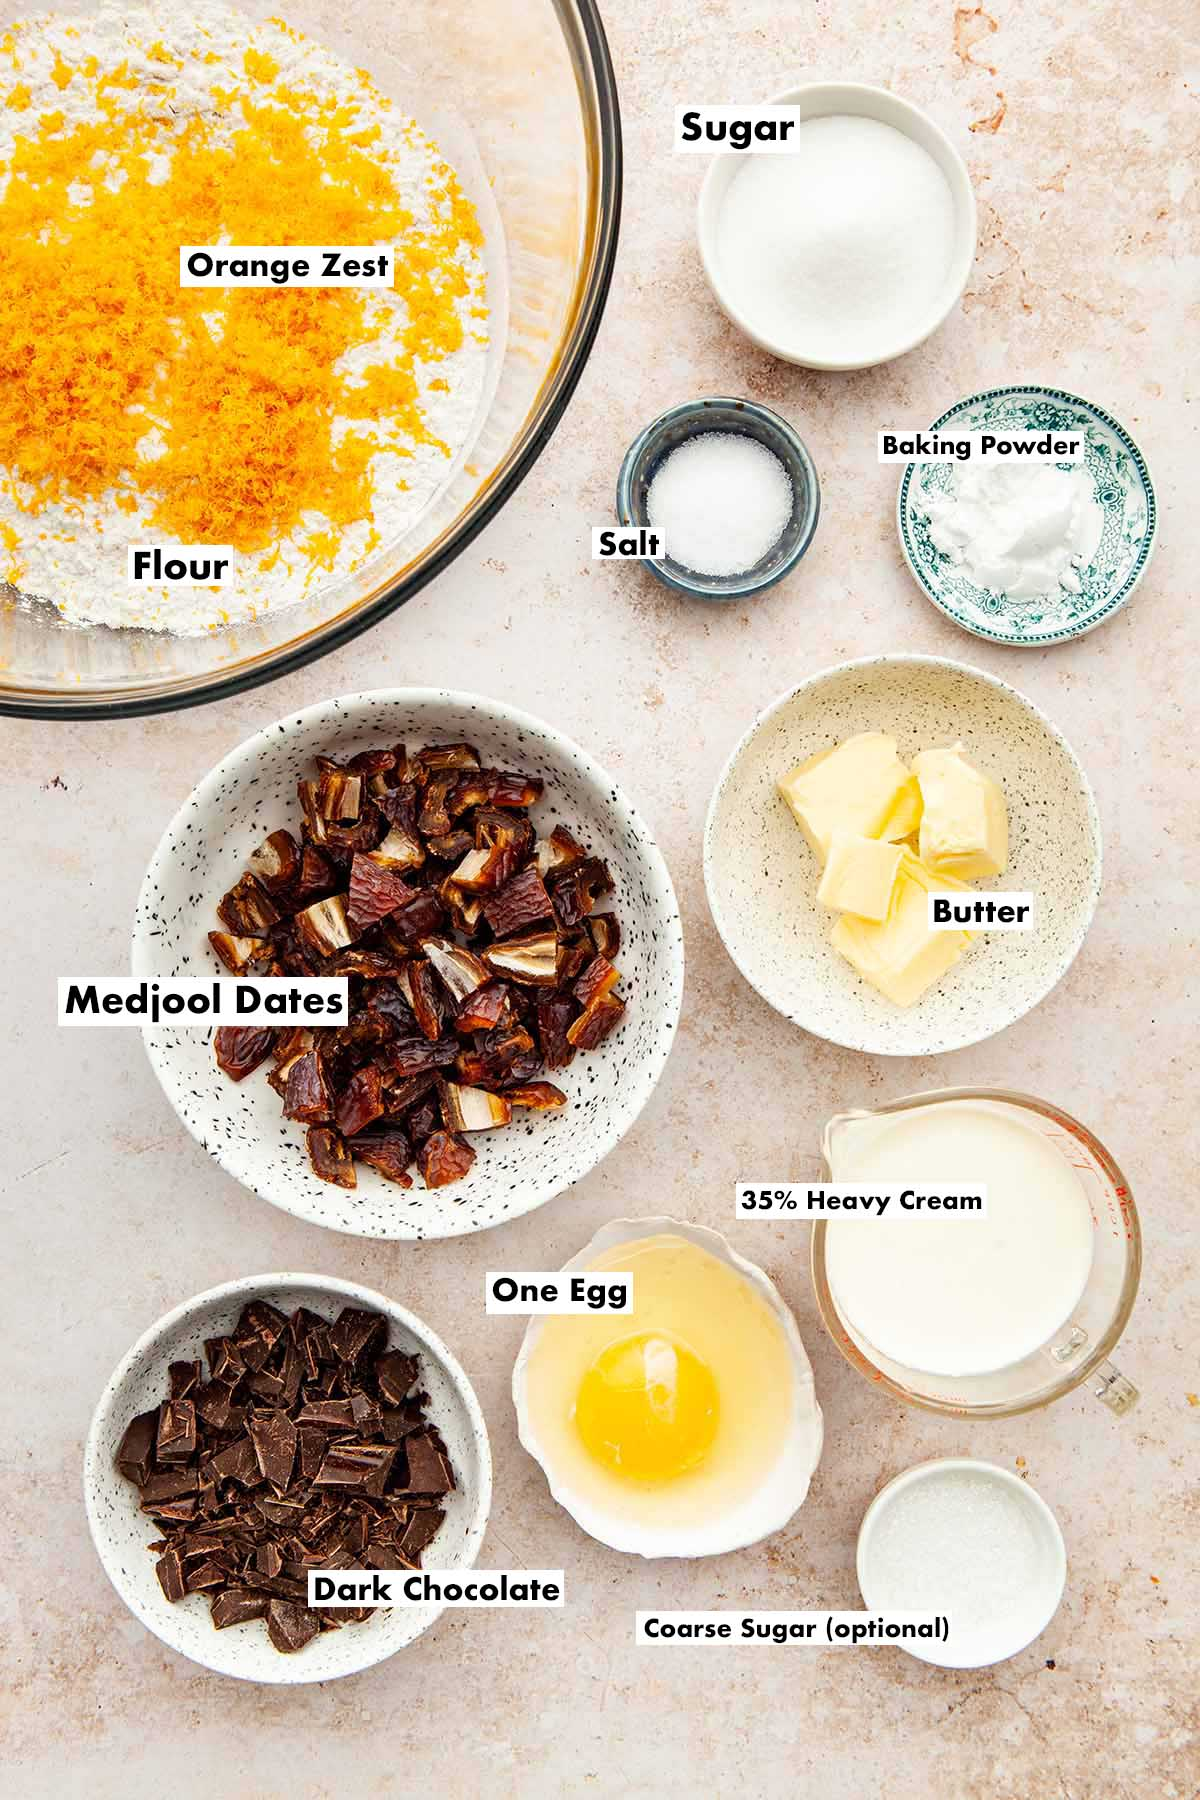 Ingredients to make date and orange scones.